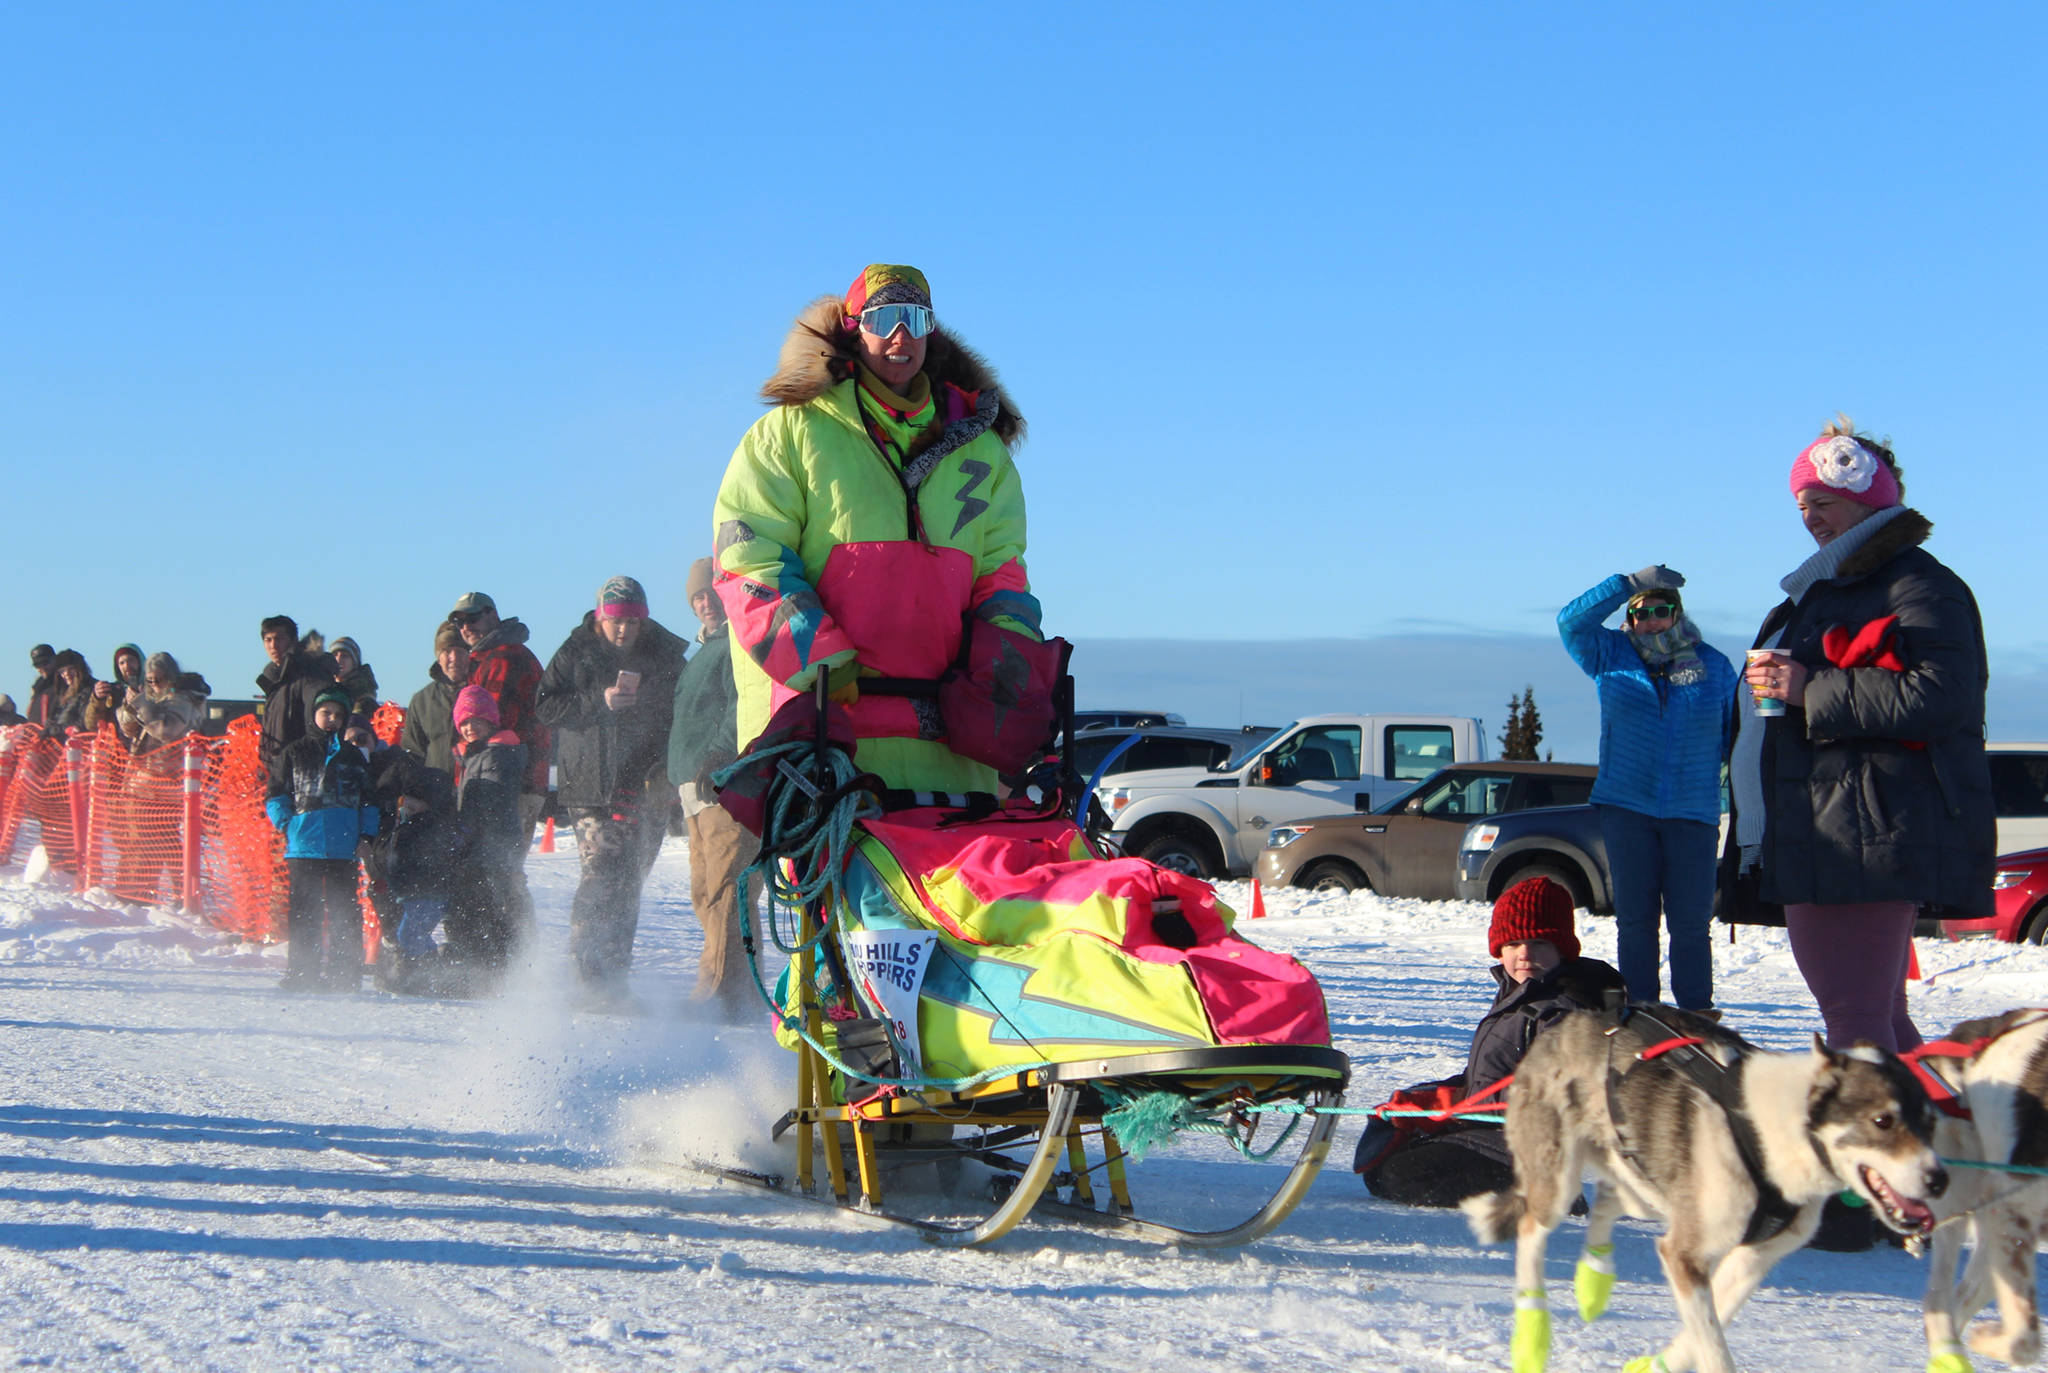 Monica Zappa, in her telltale neon garb, takes off with her team from the starting line of this year's Tustumena 200 Sled Dog Race on Saturday, Jan. 27, 2018 at Freddie's Roadhouse in Ninilchik, Alaska. (Homer News file photo)